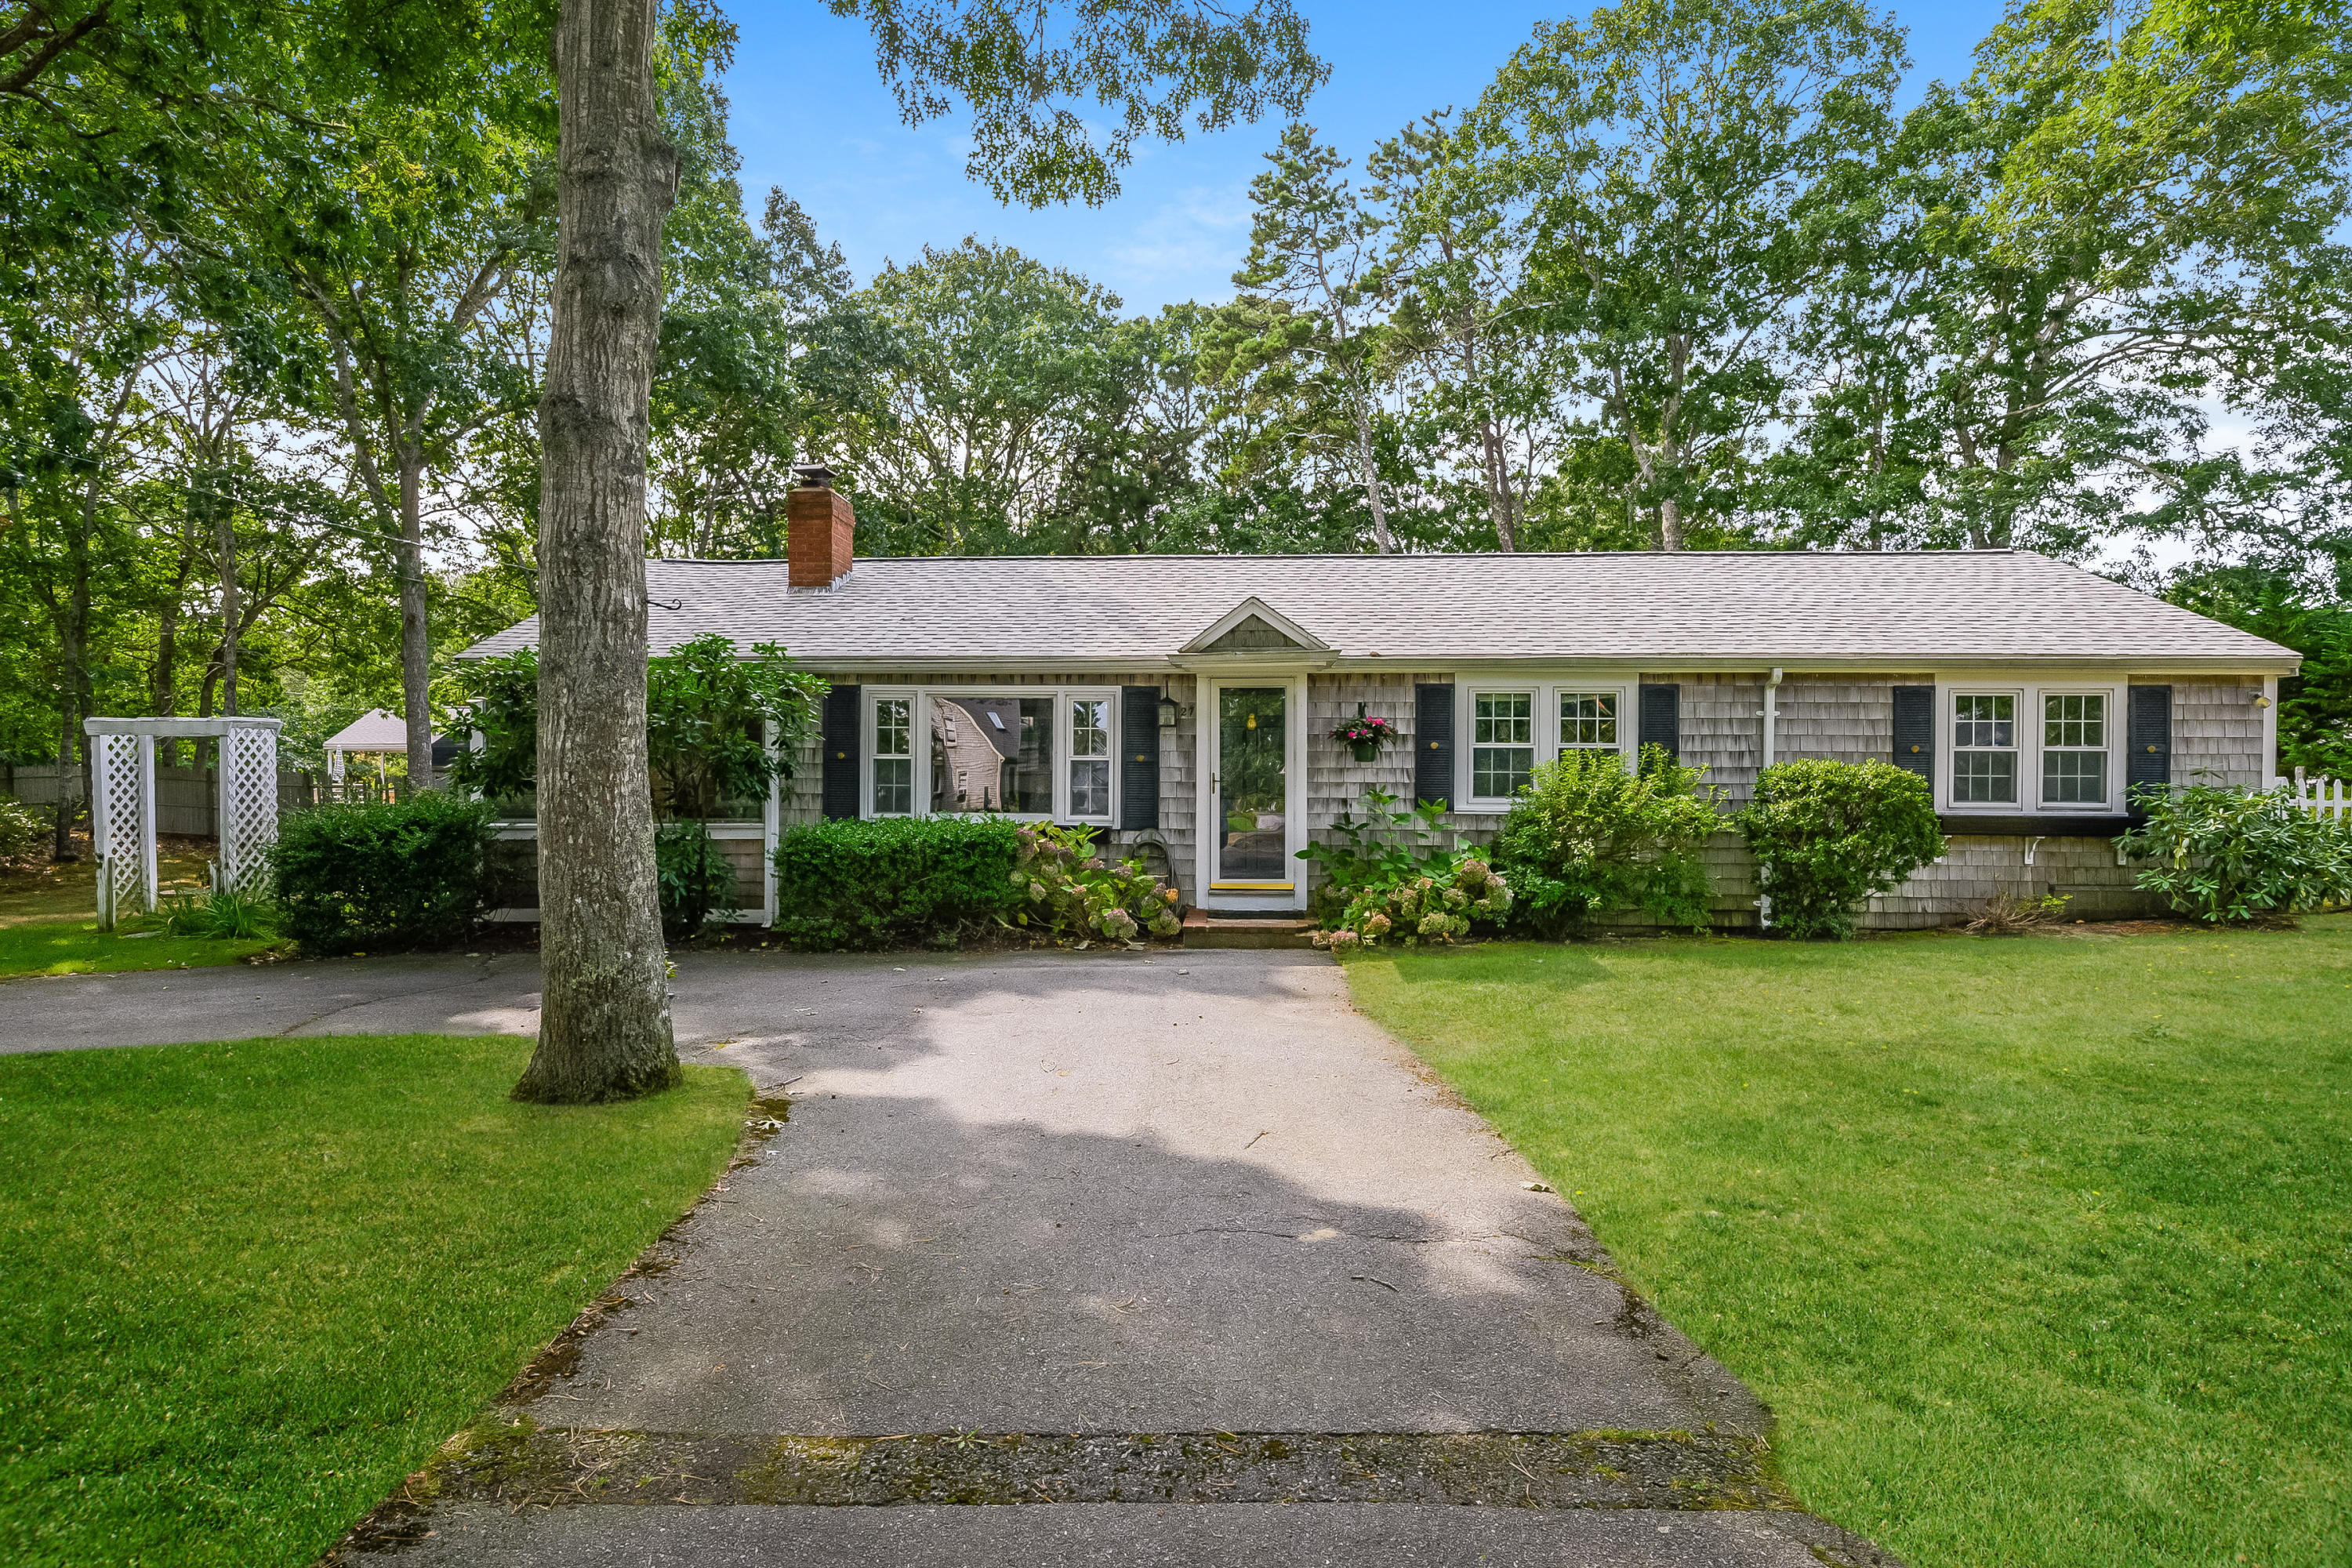 27 Spruce Street, South Yarmouth MA, 02664 details